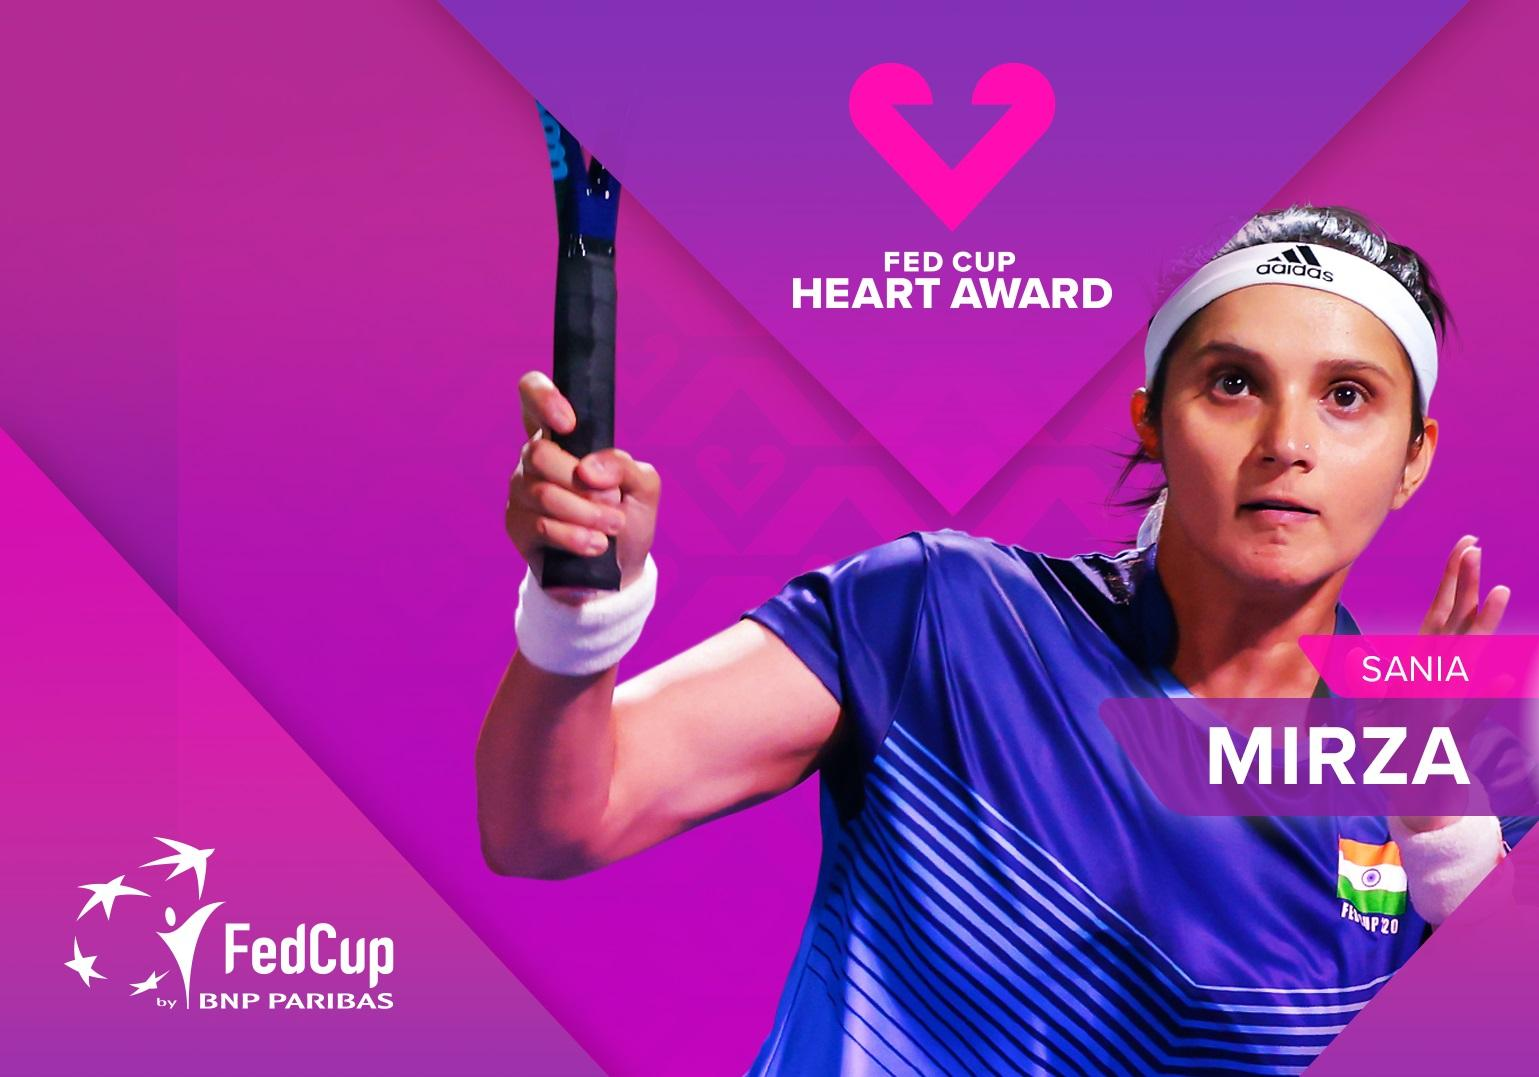 Sania Mirza becomes 1st Indian to win Fed Cup Heart Award_40.1